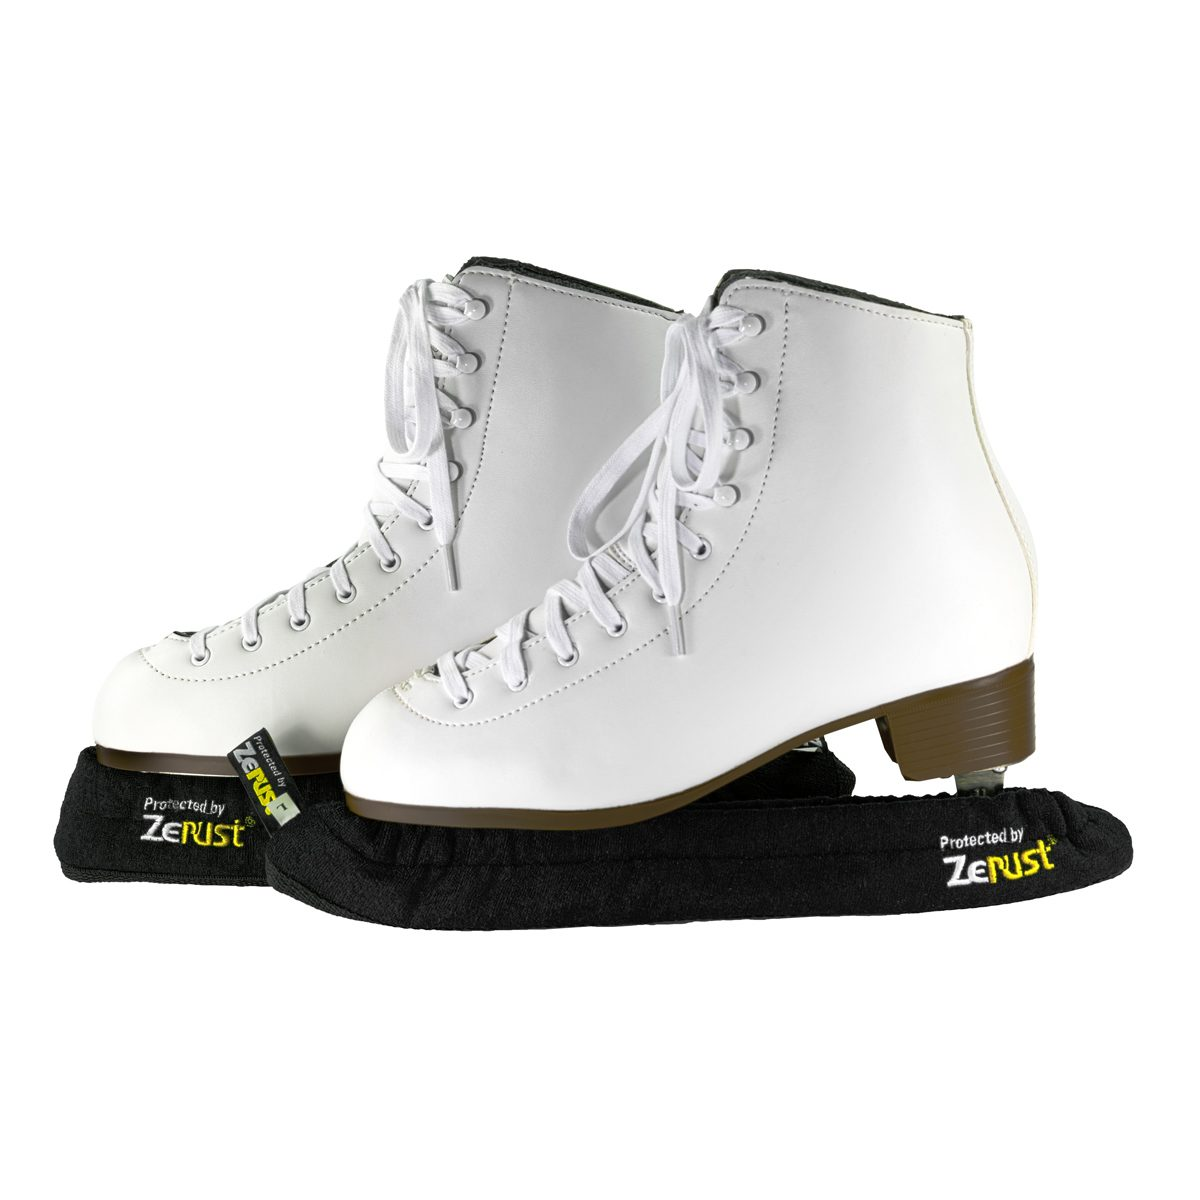 Ice Skate Blade Covers | Zerust Anti-Corrosion Products